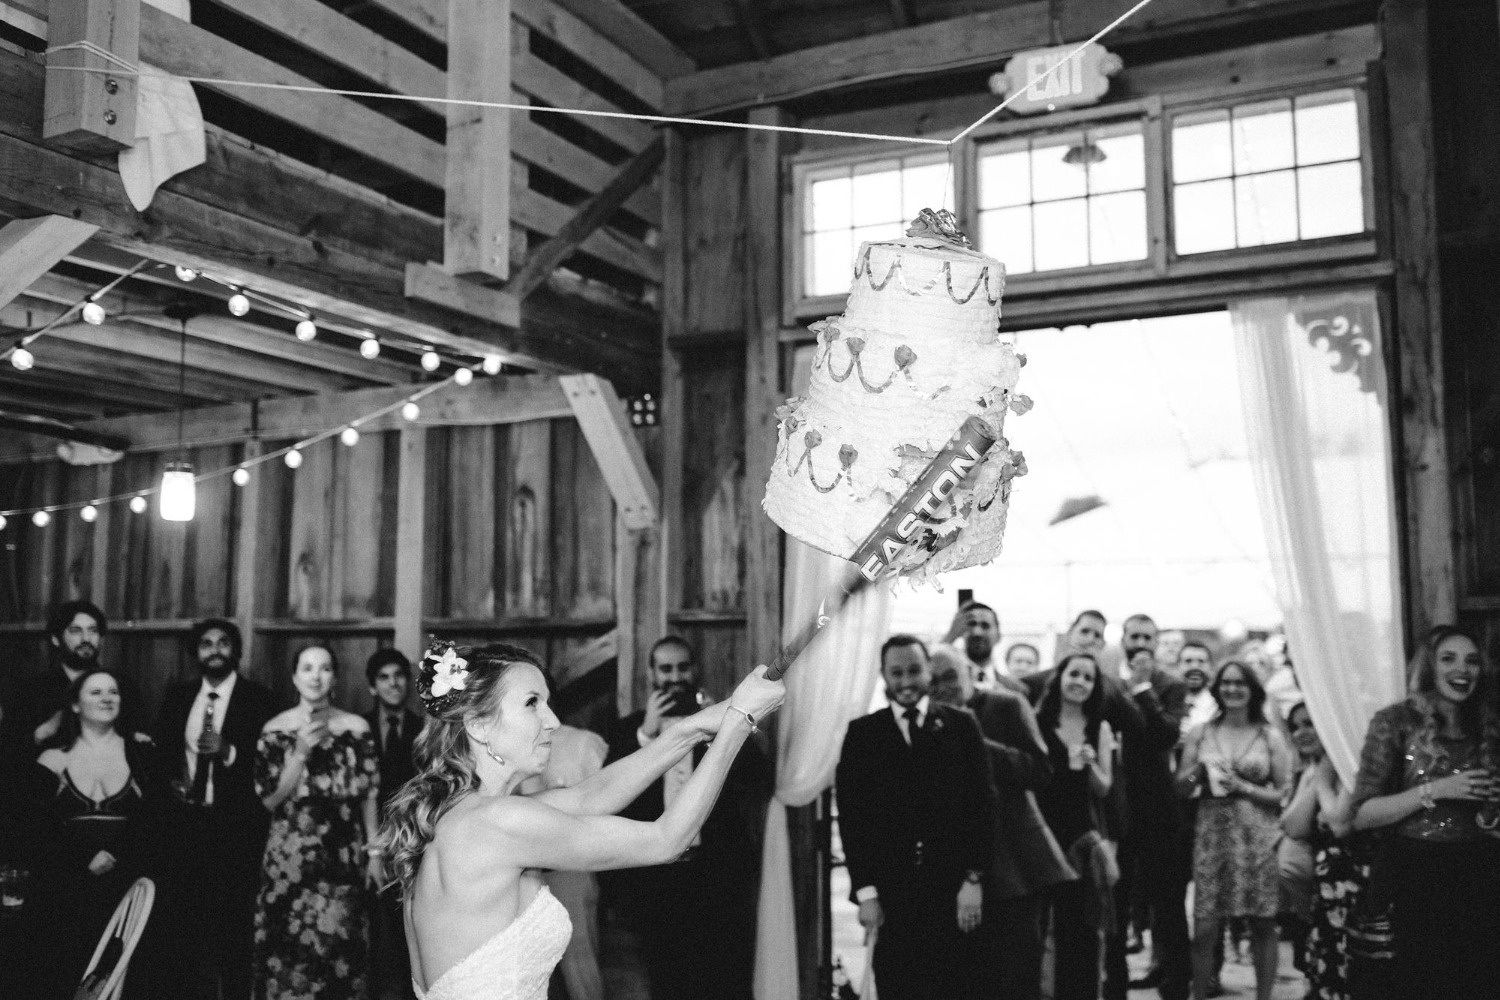 Hit the wedding cake pinata